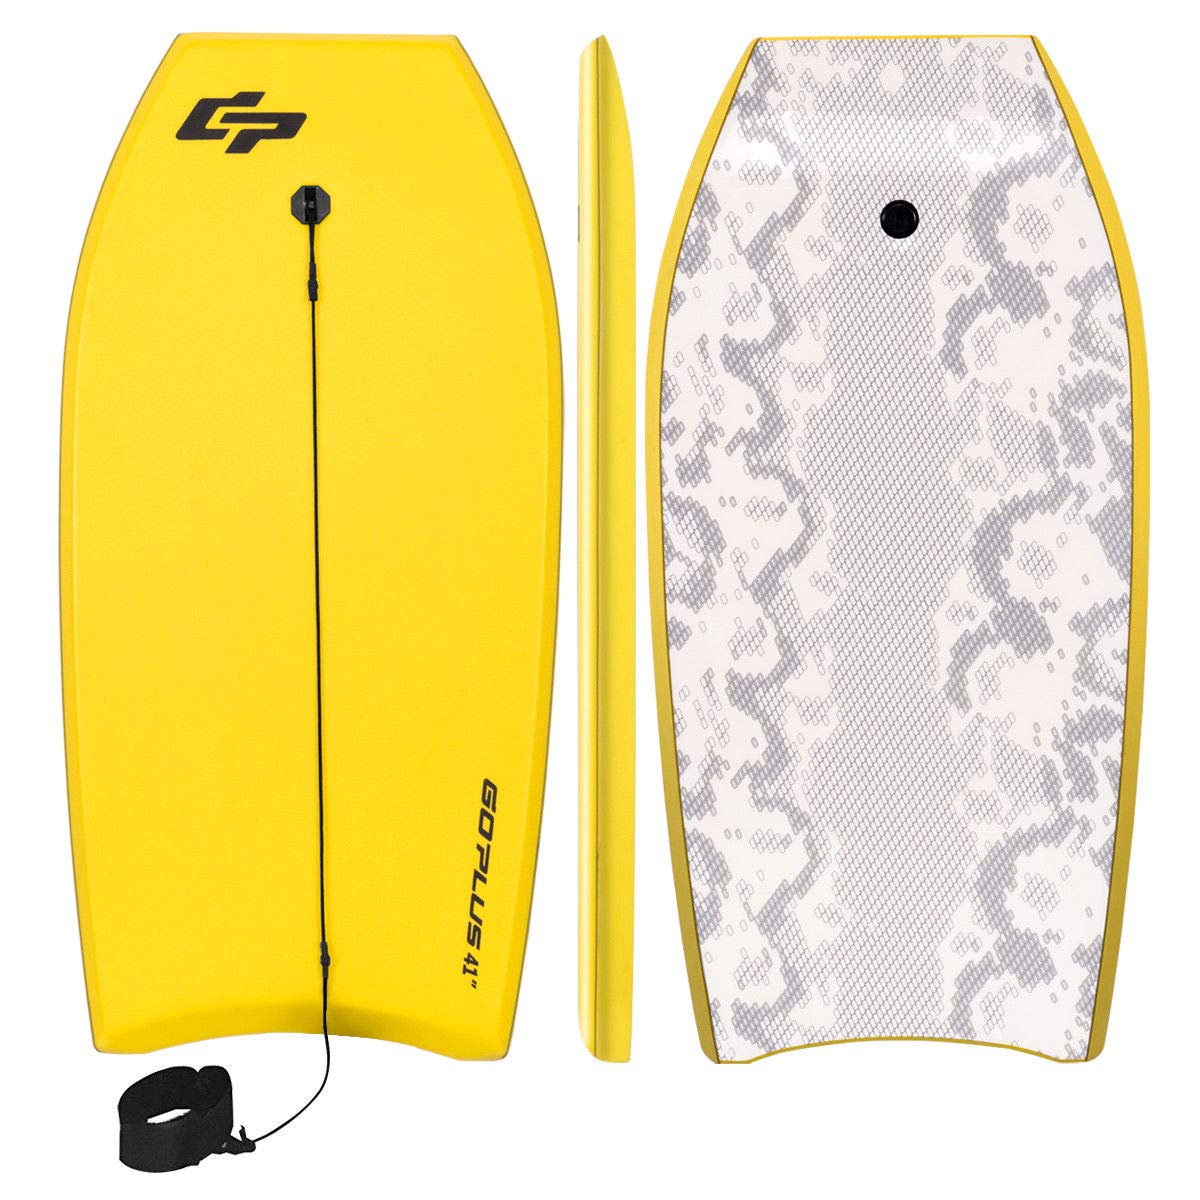 Goplus 41 inch Super Bodyboard Body Board EPS Core, IXPE Deck, HDPE Slick Bottom with Leash, Light Weight Perfect Surfing for Kids and Adults (Yellow) by Goplus